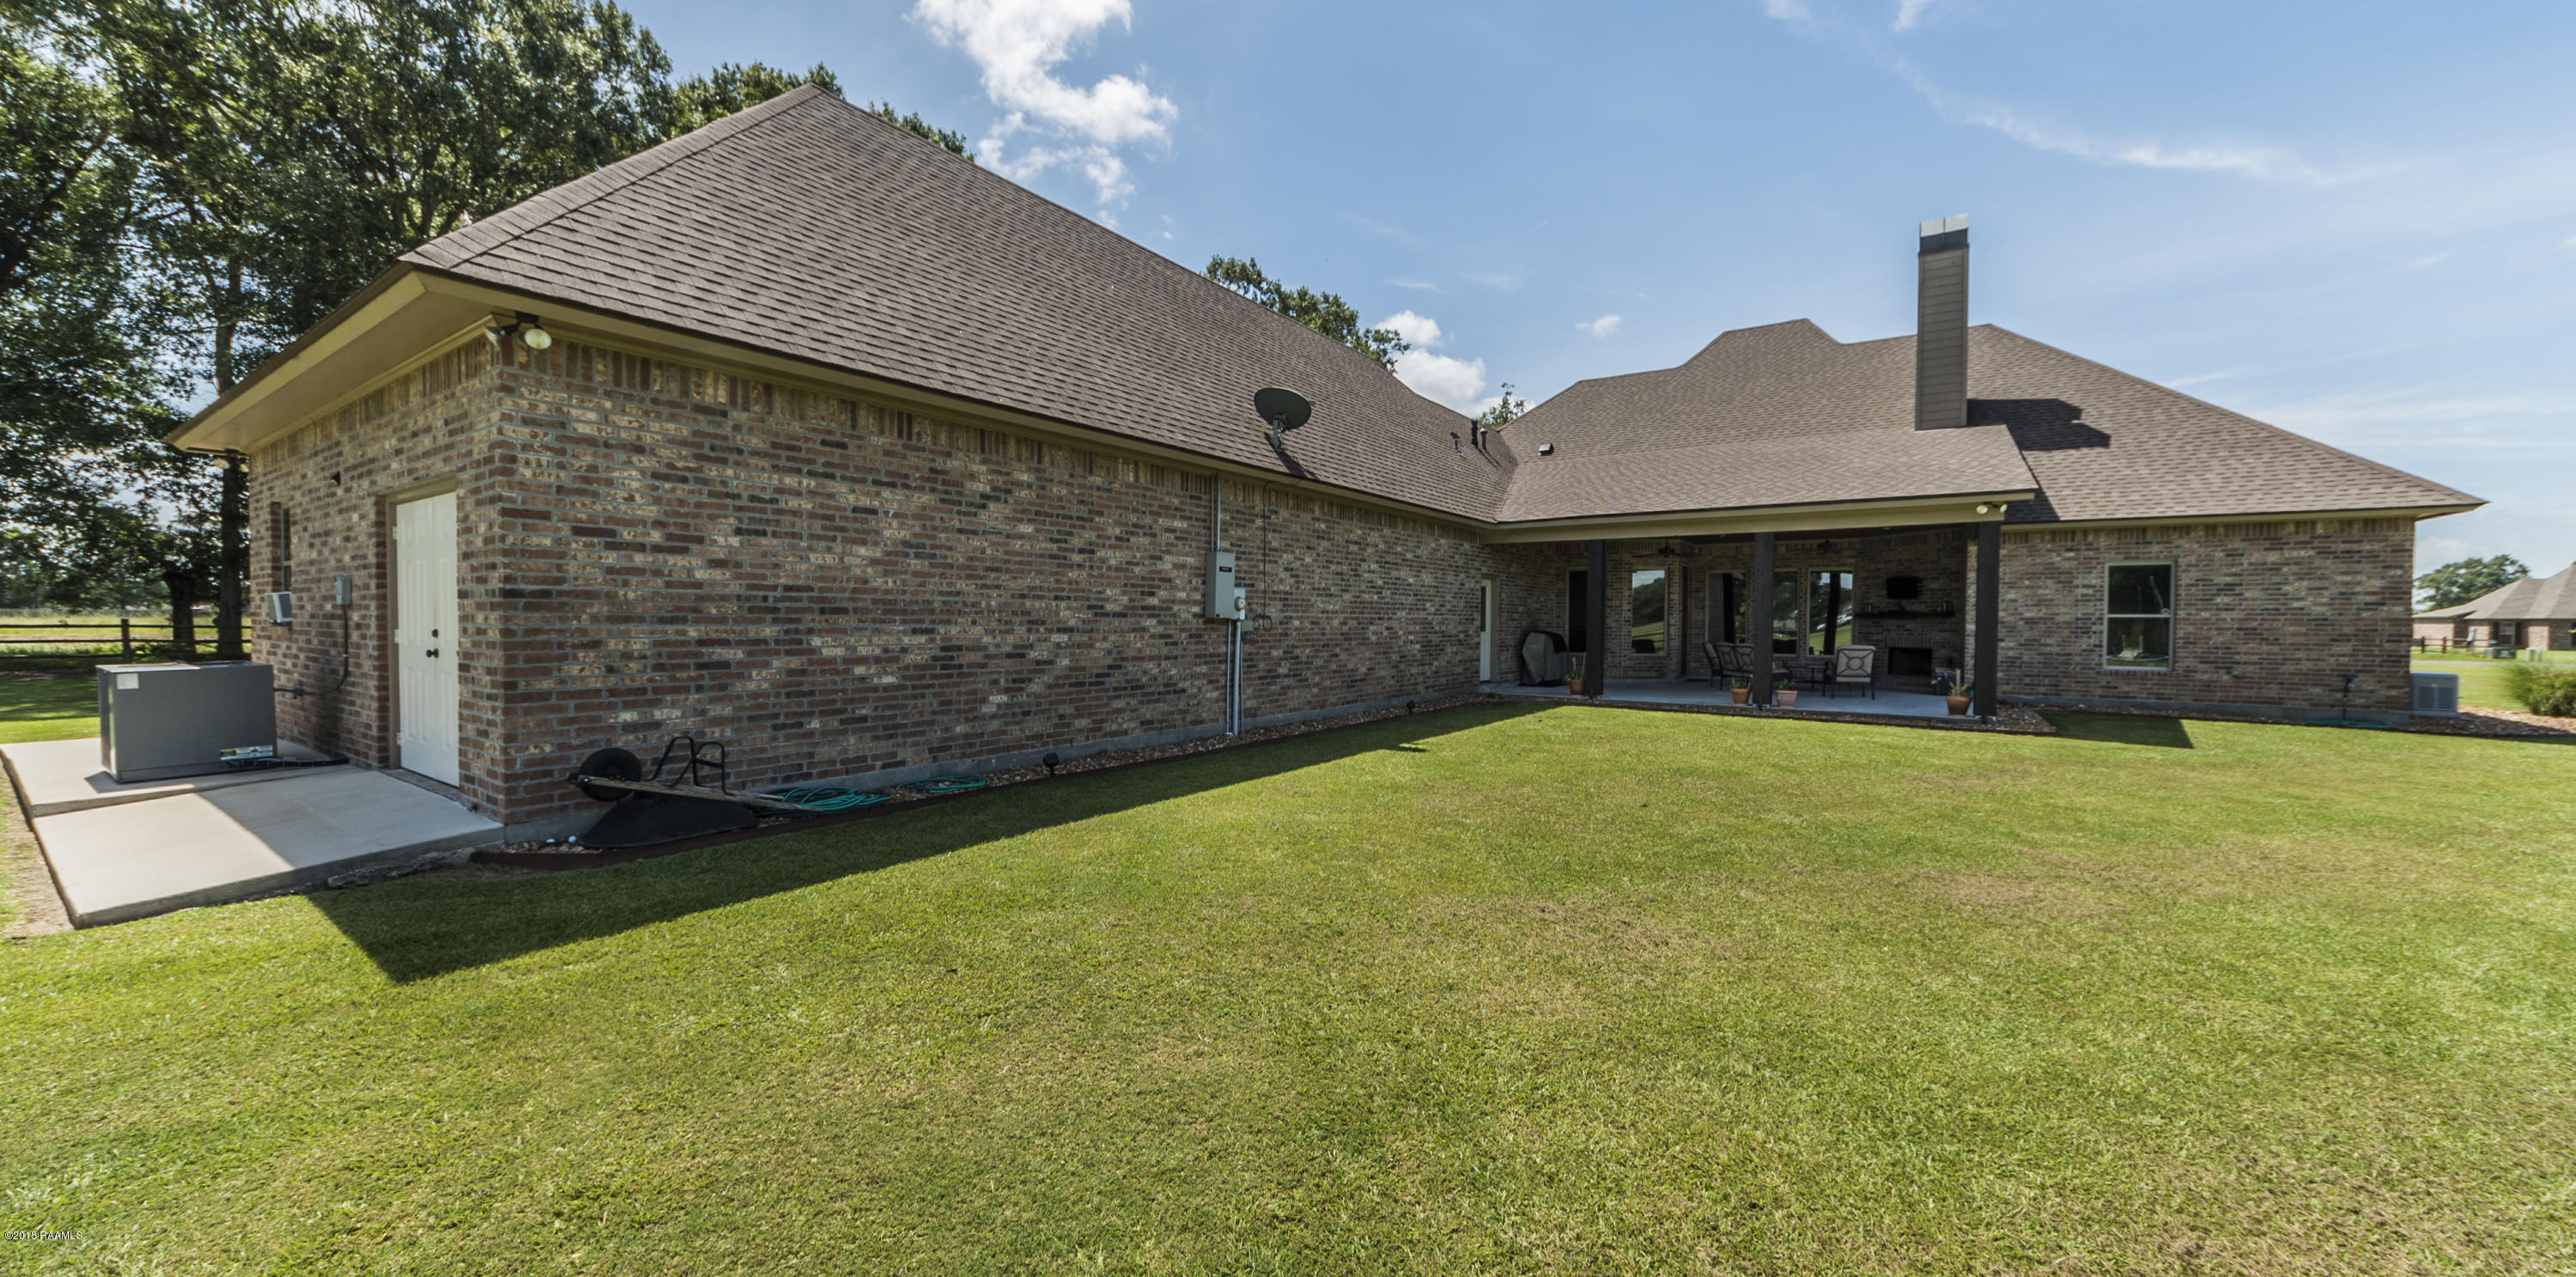 104 Saddle Drive, Opelousas, LA 70570 Photo #37